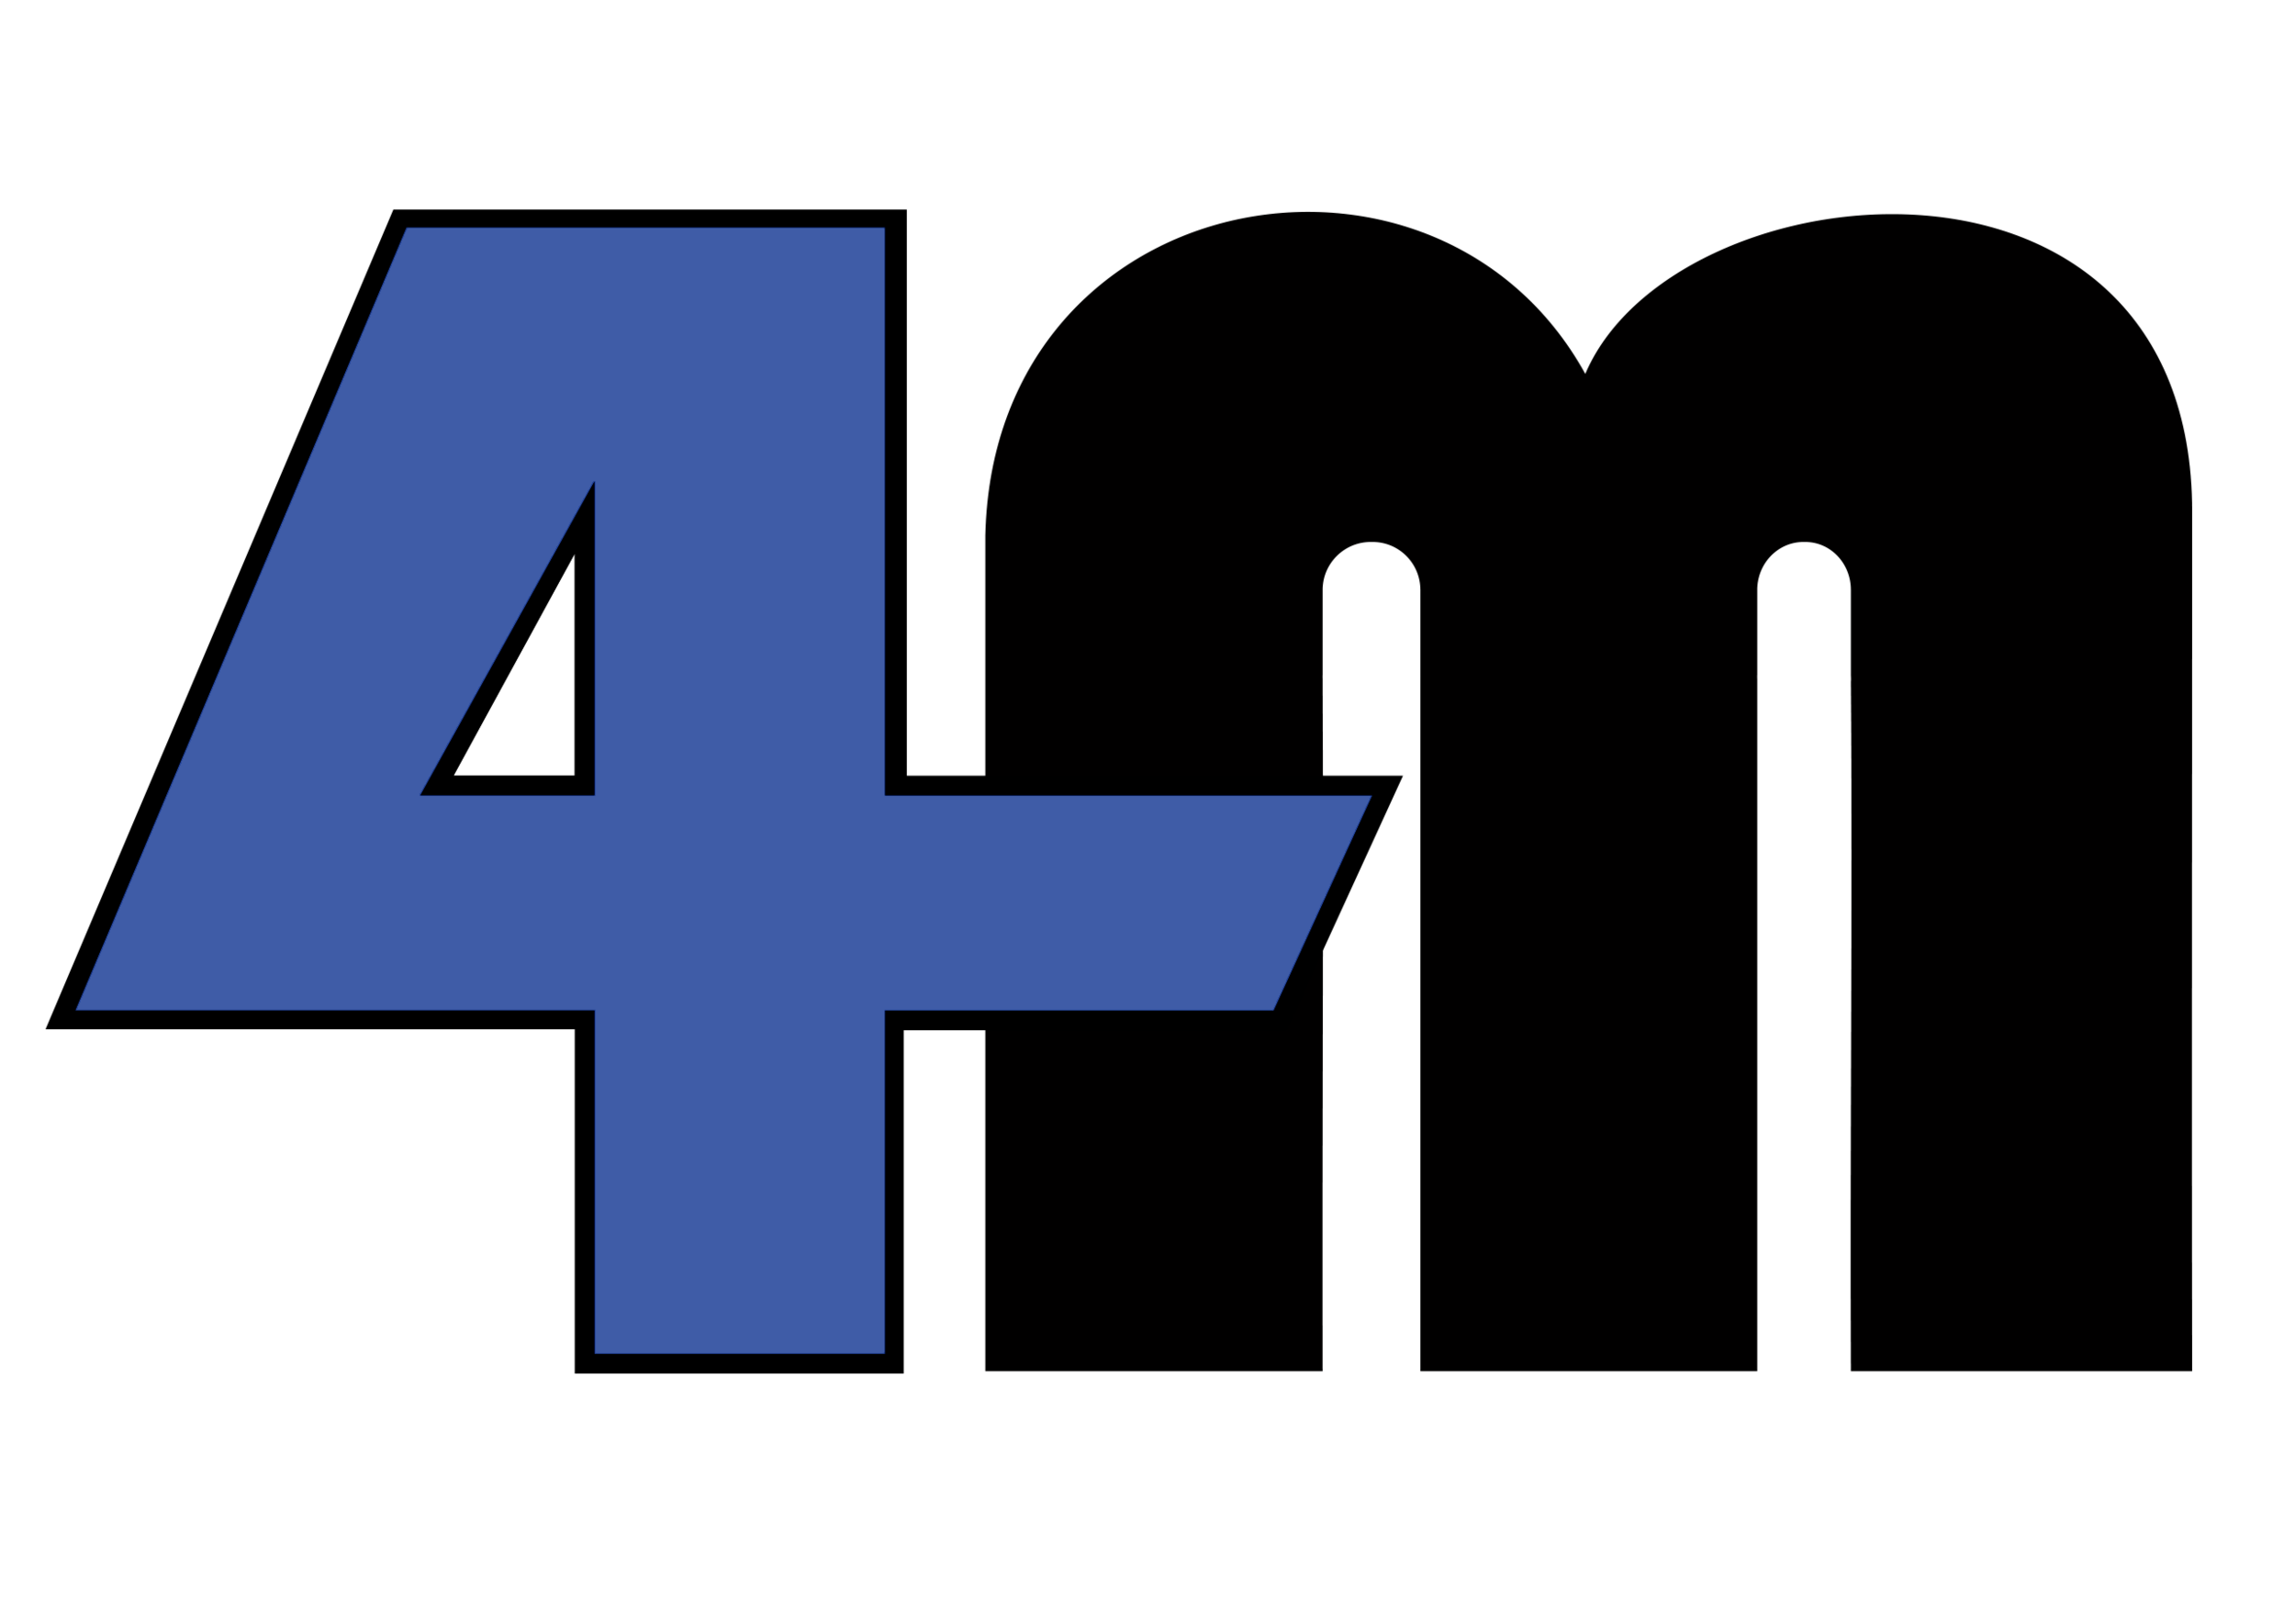 4M_Official_Logo_No_Wording.png